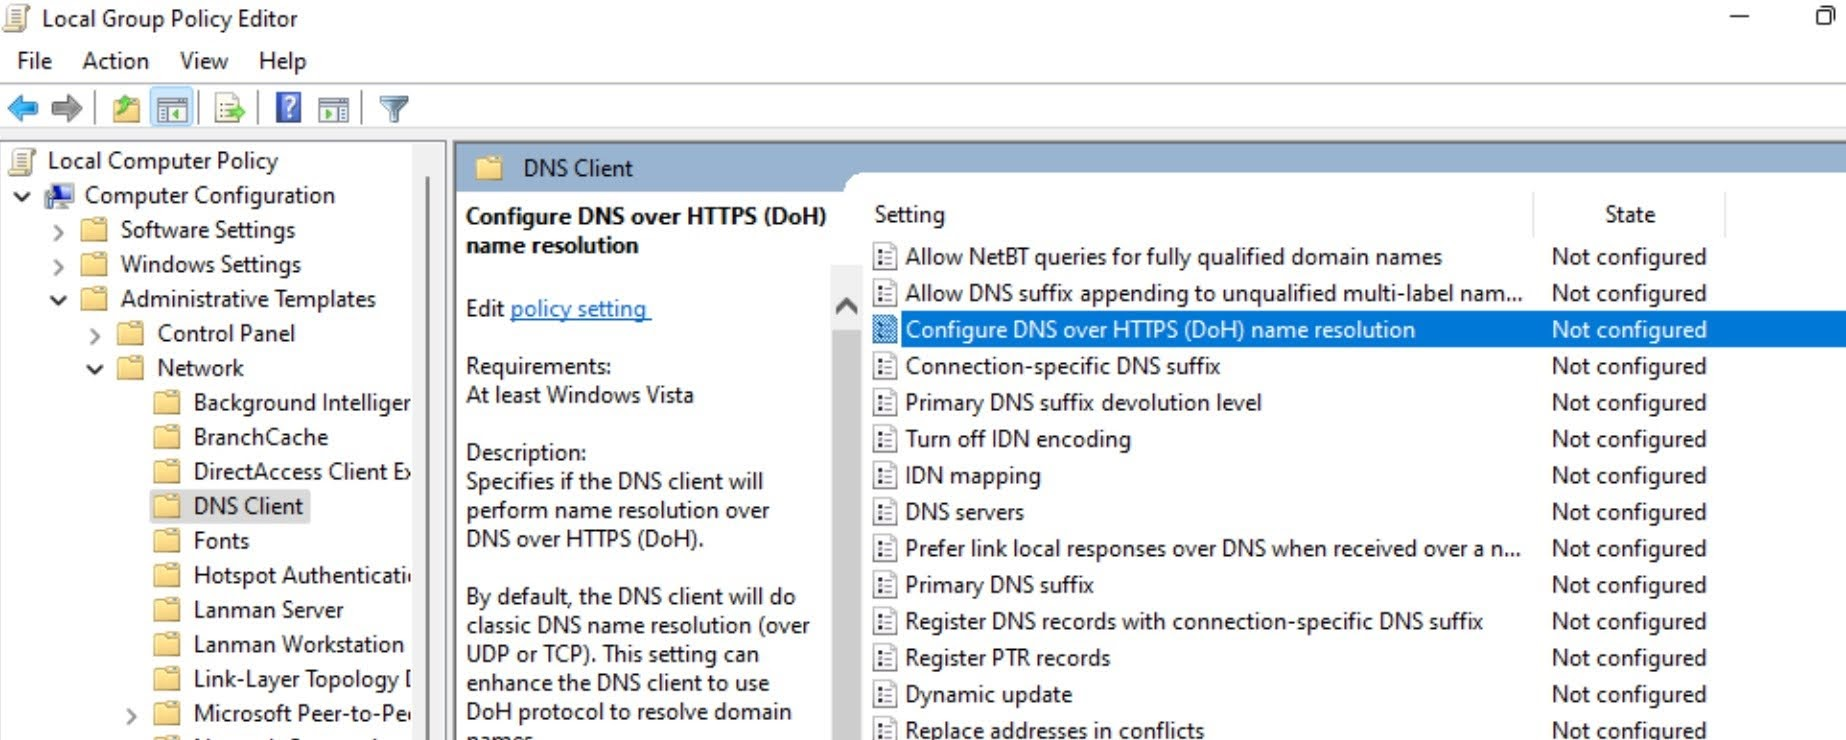 Double-click on the Configure DNS over HTTPS(DoH) name resolution policy.